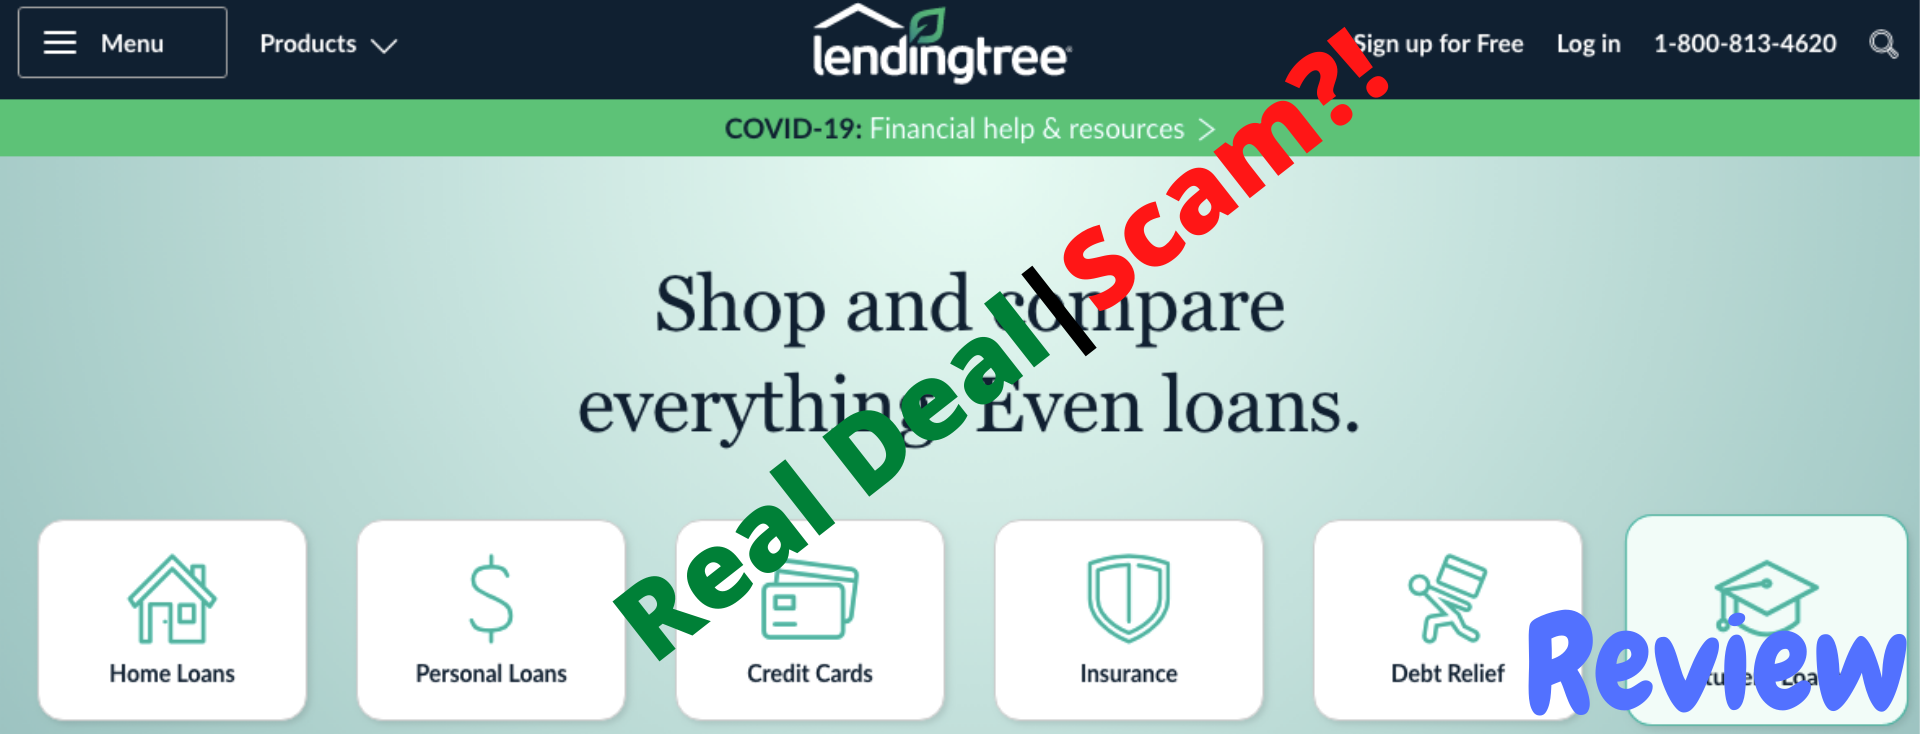 LendingTree real deal or scam?!